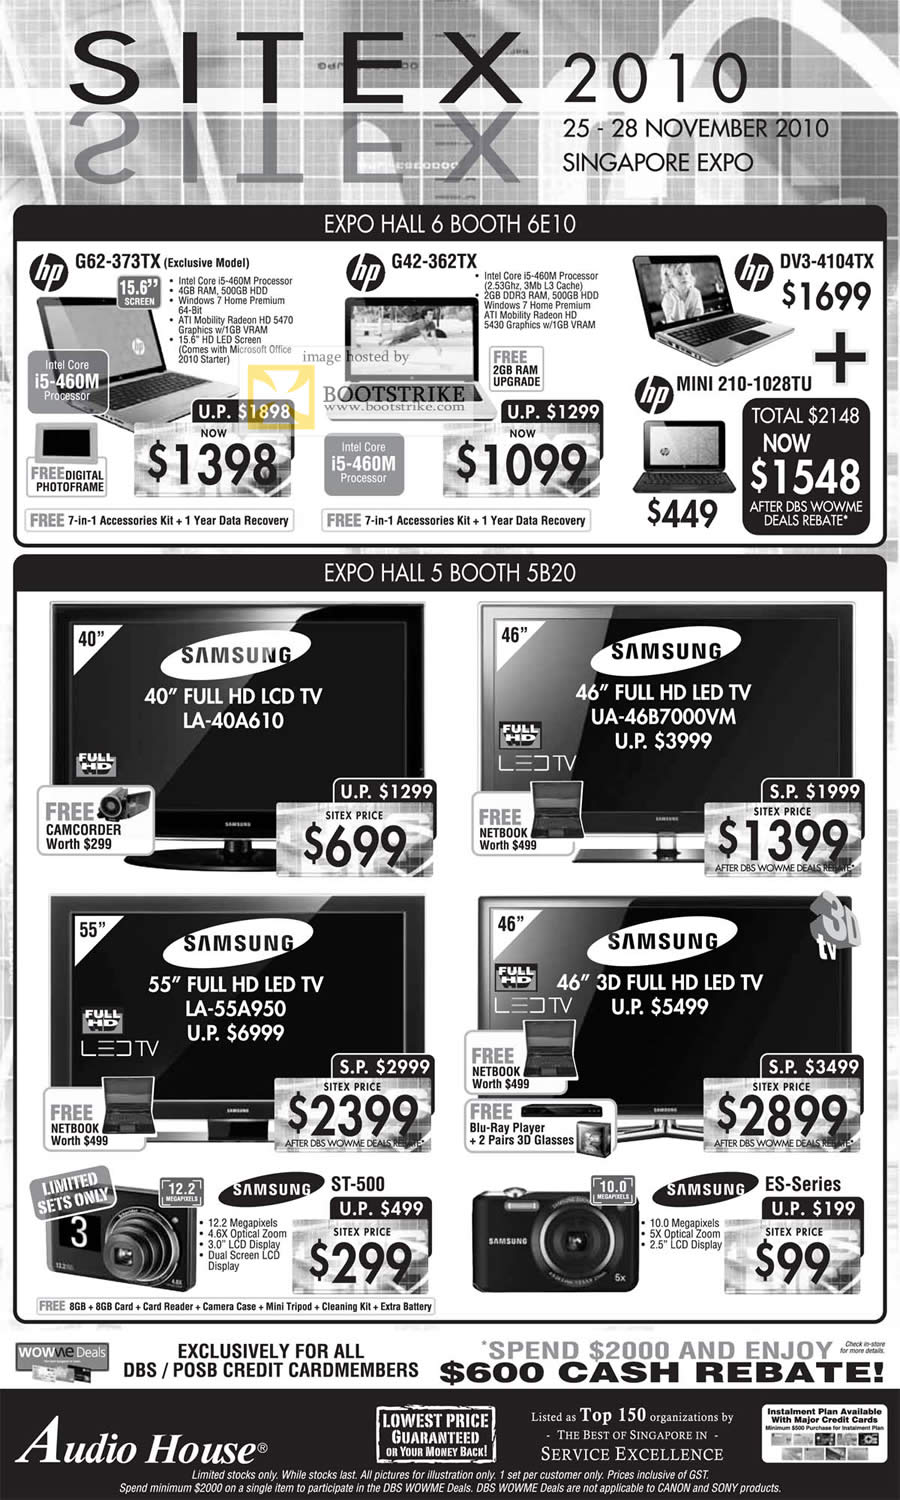 Sitex 2010 price list image brochure of Audio House HP Notebooks G62 G42 DV3 Samsung LCD LED TV Series 4 5 Digital Cameras